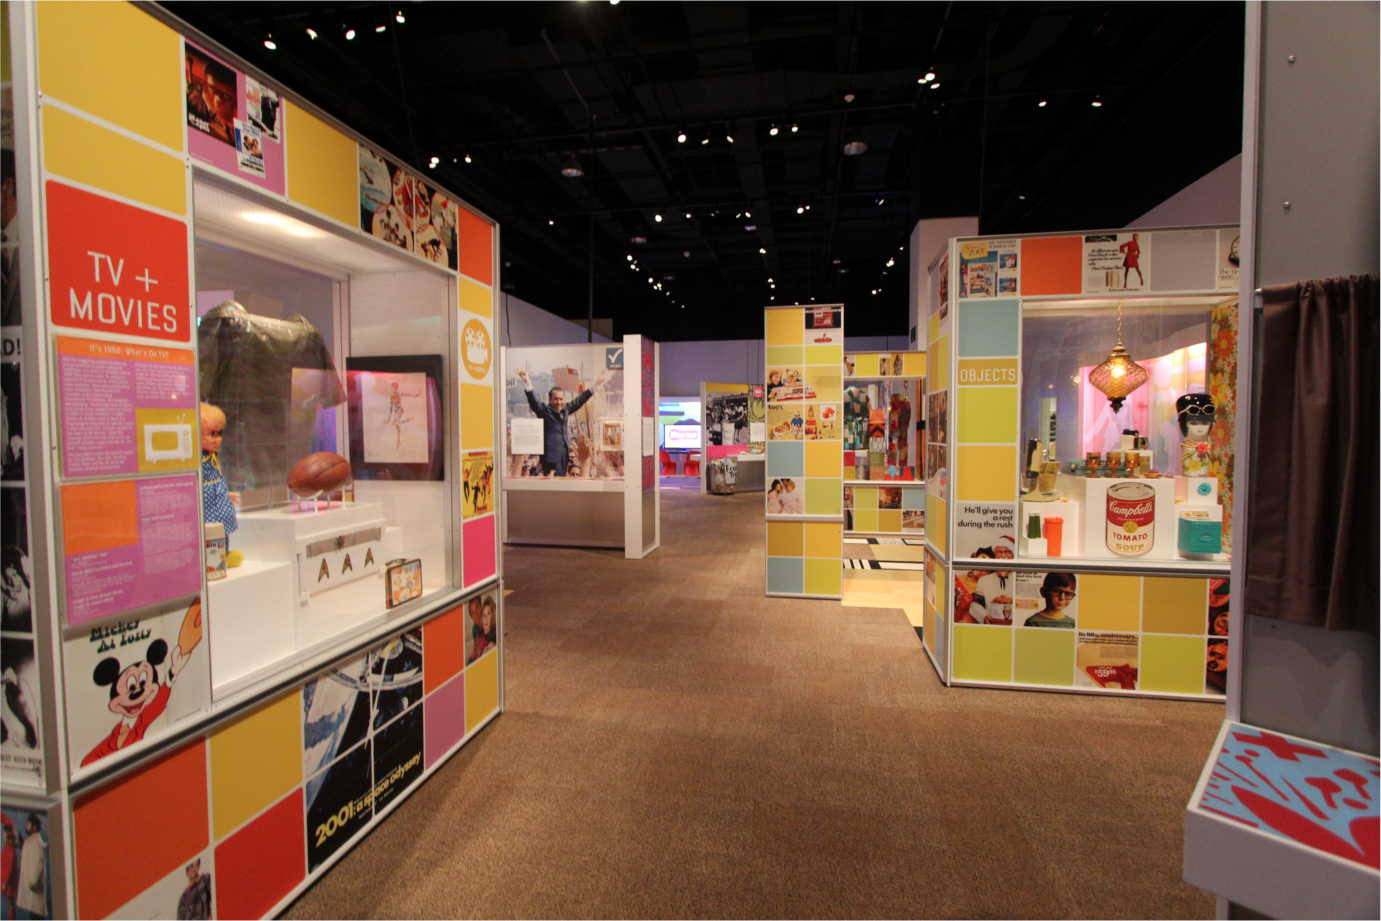 A portion of *The 1968 Exhibit*, a popular traveling exhibition created with funding from the National Endowment for the Humanities. Image courtesy of the Minnesota Historical Society.